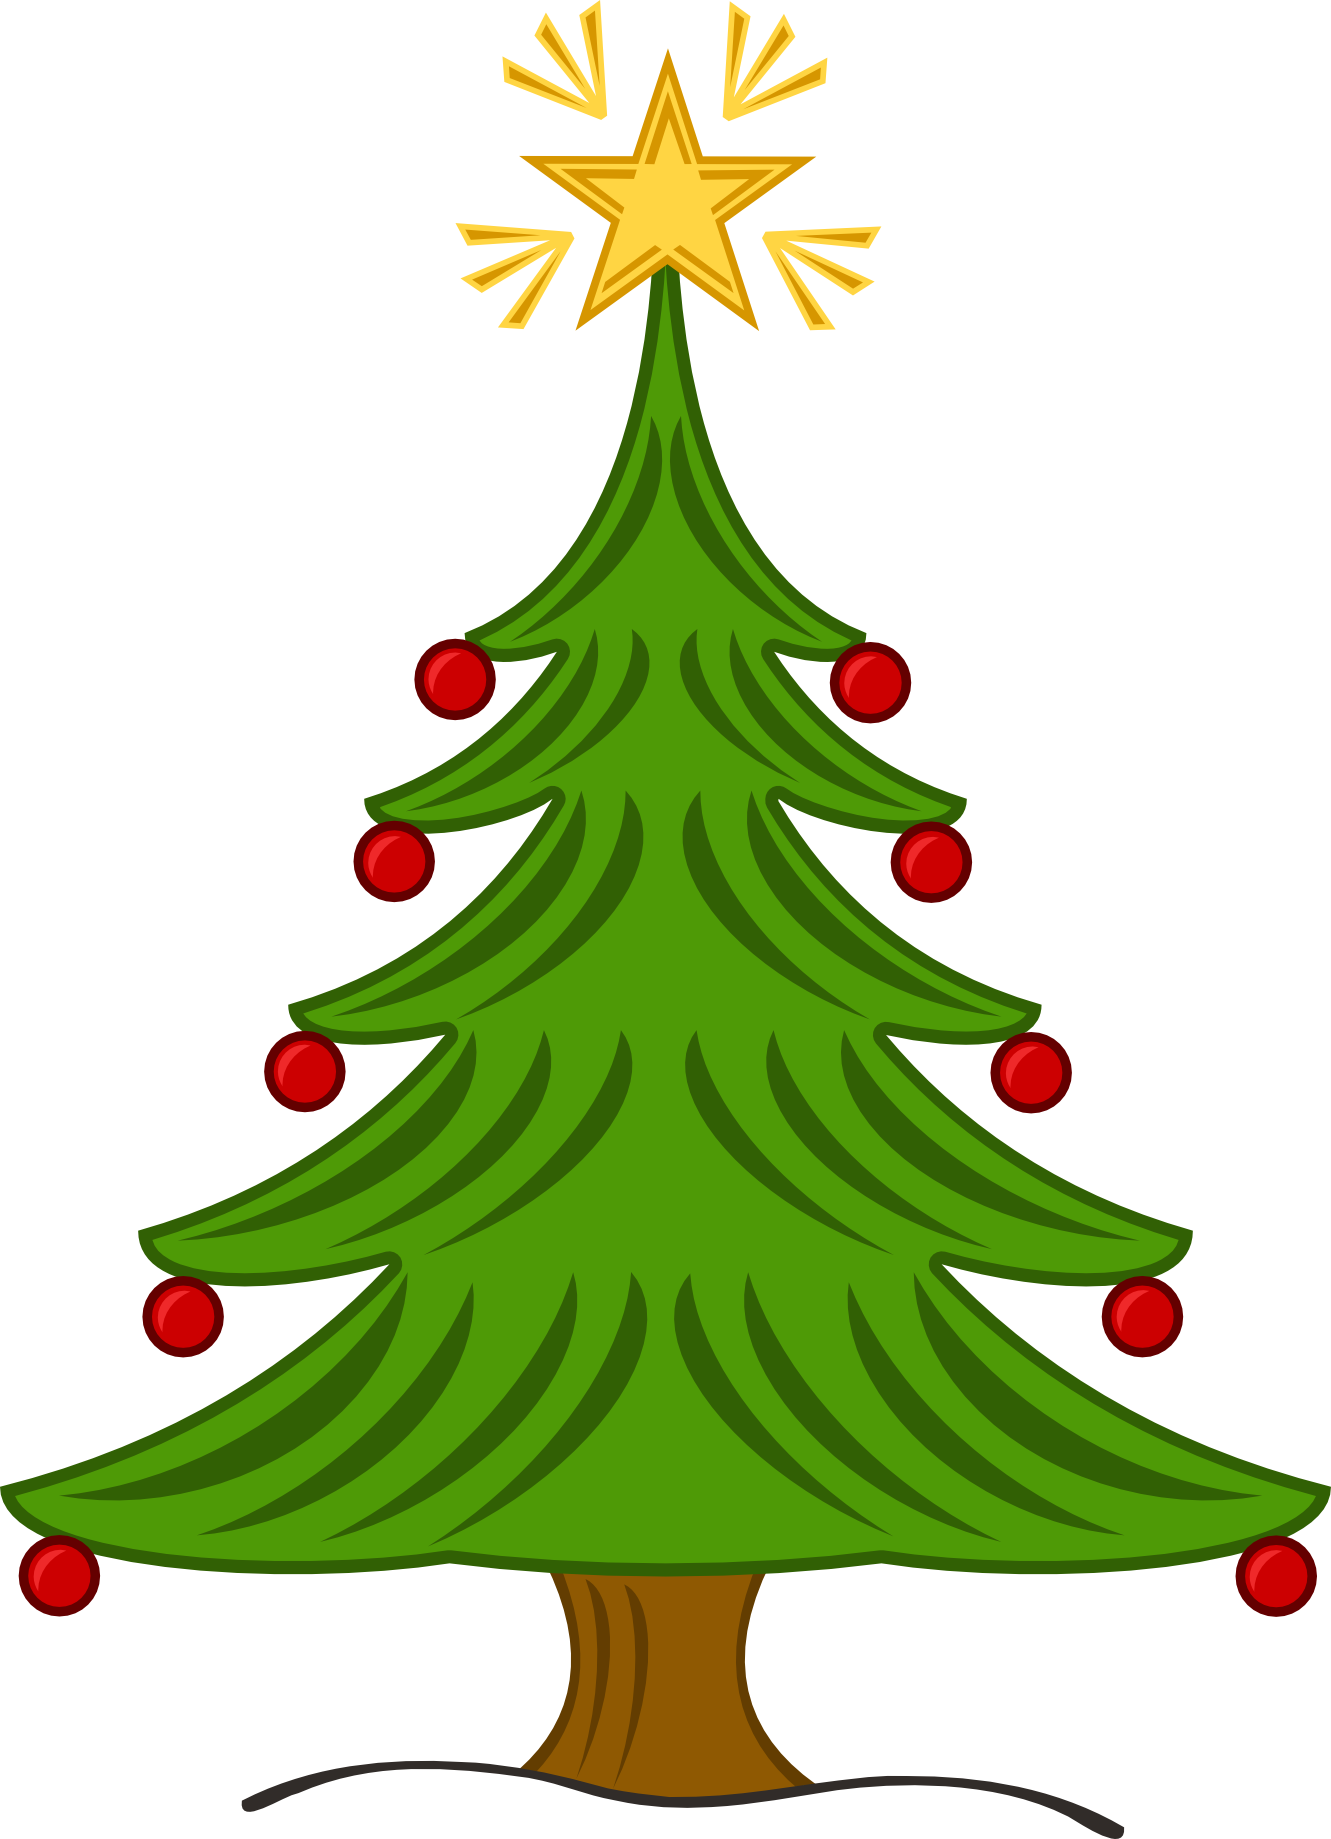 Clip Art Of Christmas Tree - ClipArt Best